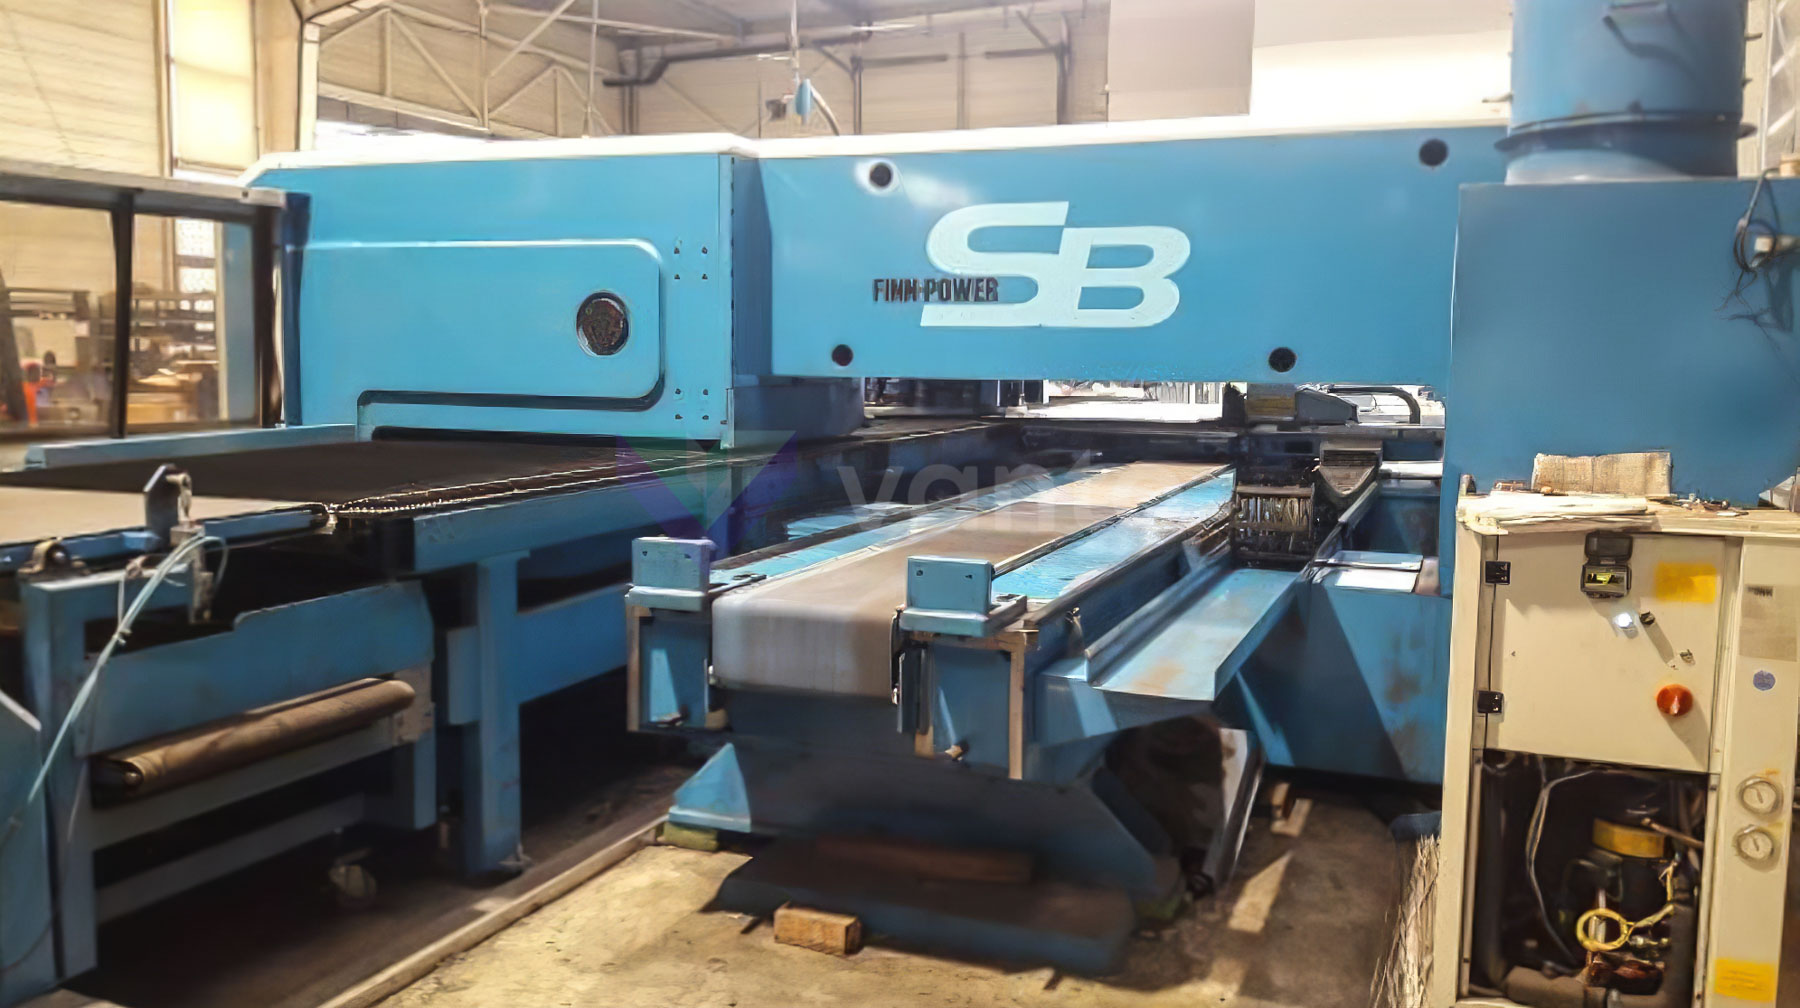 FINN POWER Shear Brilliance SB6 CNC punching machine (2002) id10446